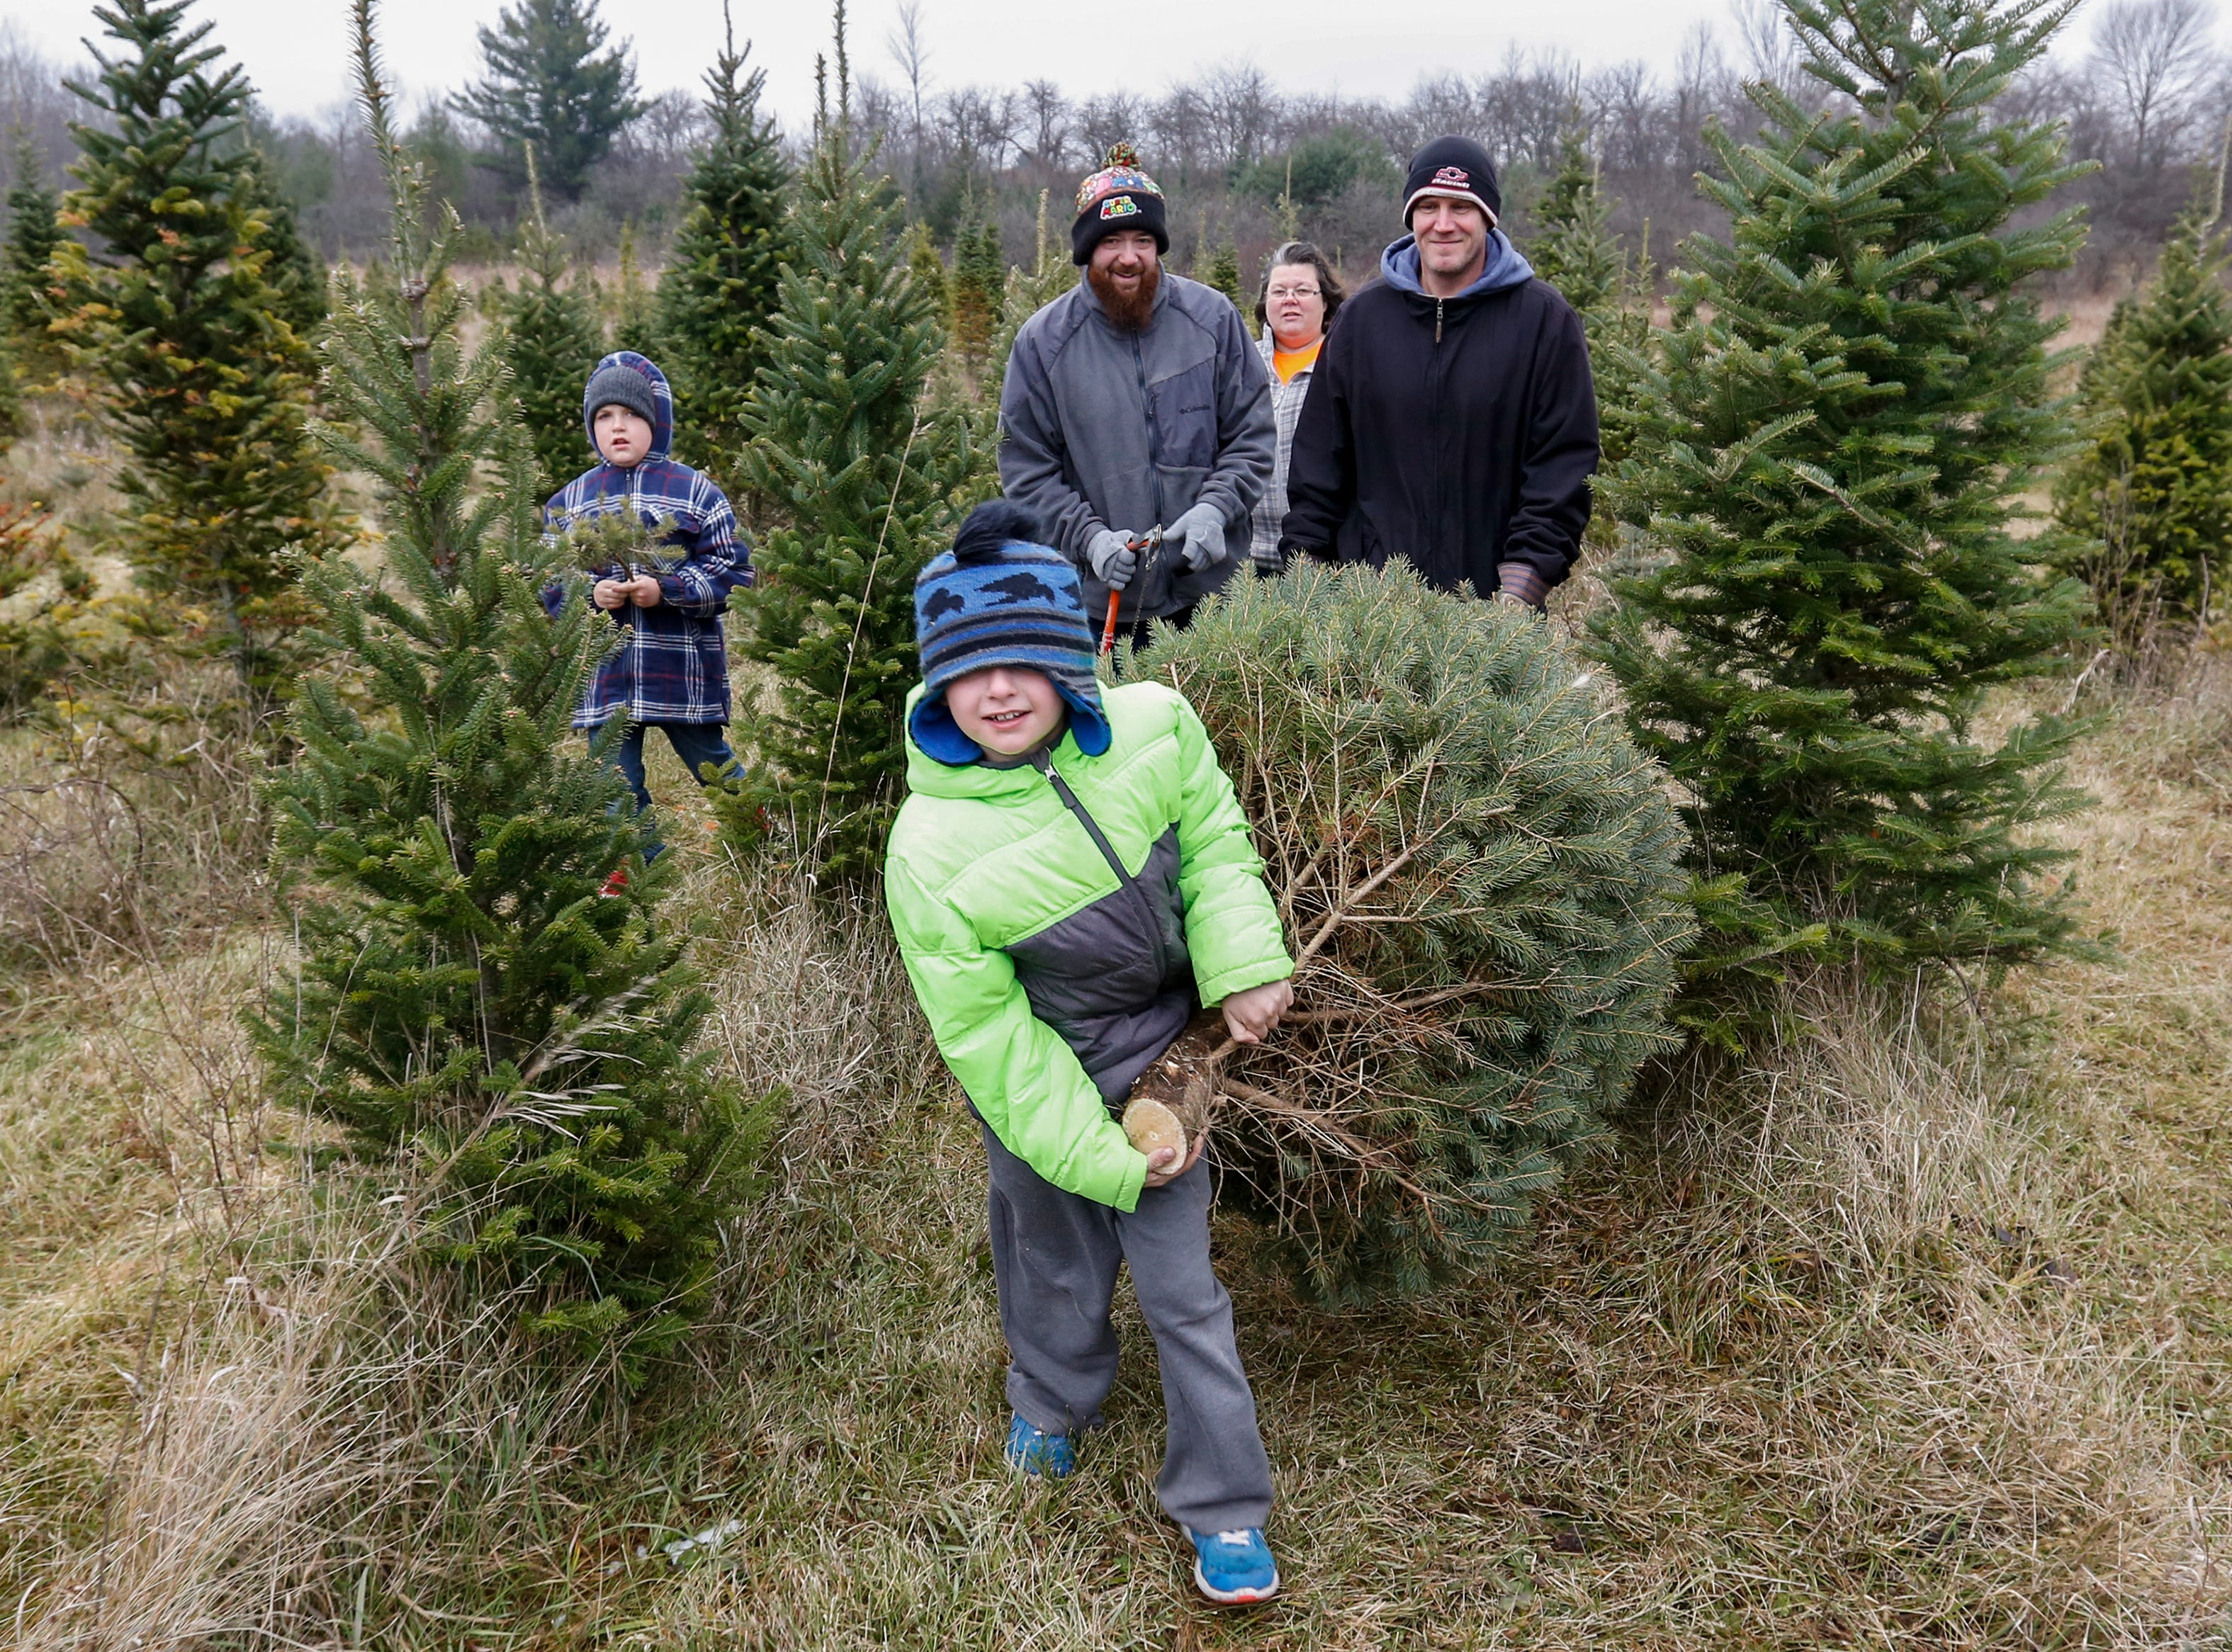 Dominik Graham, 7, helps carry his family's fresh-cut Christmas tree to their car at Taylor Trees Saturday, December 1, 2018, in Mishicot, Wis. Joshua Clark/USA TODAY NETWORK-Wisconsin